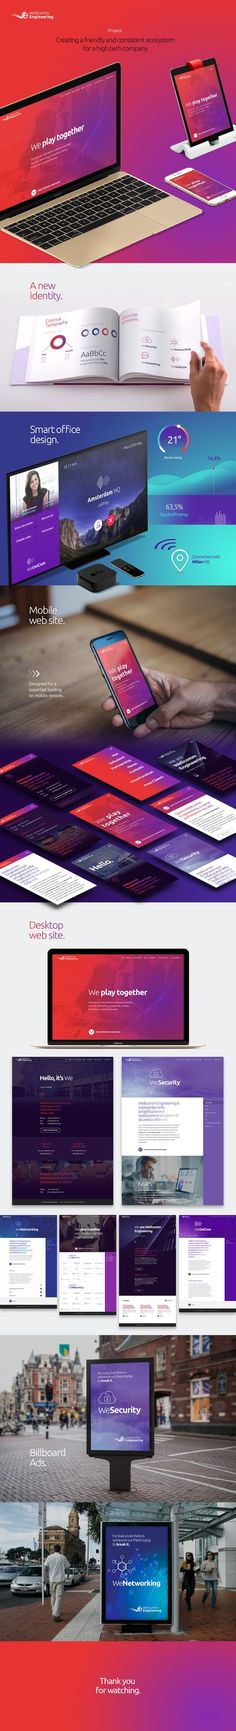 A friendly and consistent ecosystemfor a high tech company.: (Tech Trends Web Design)